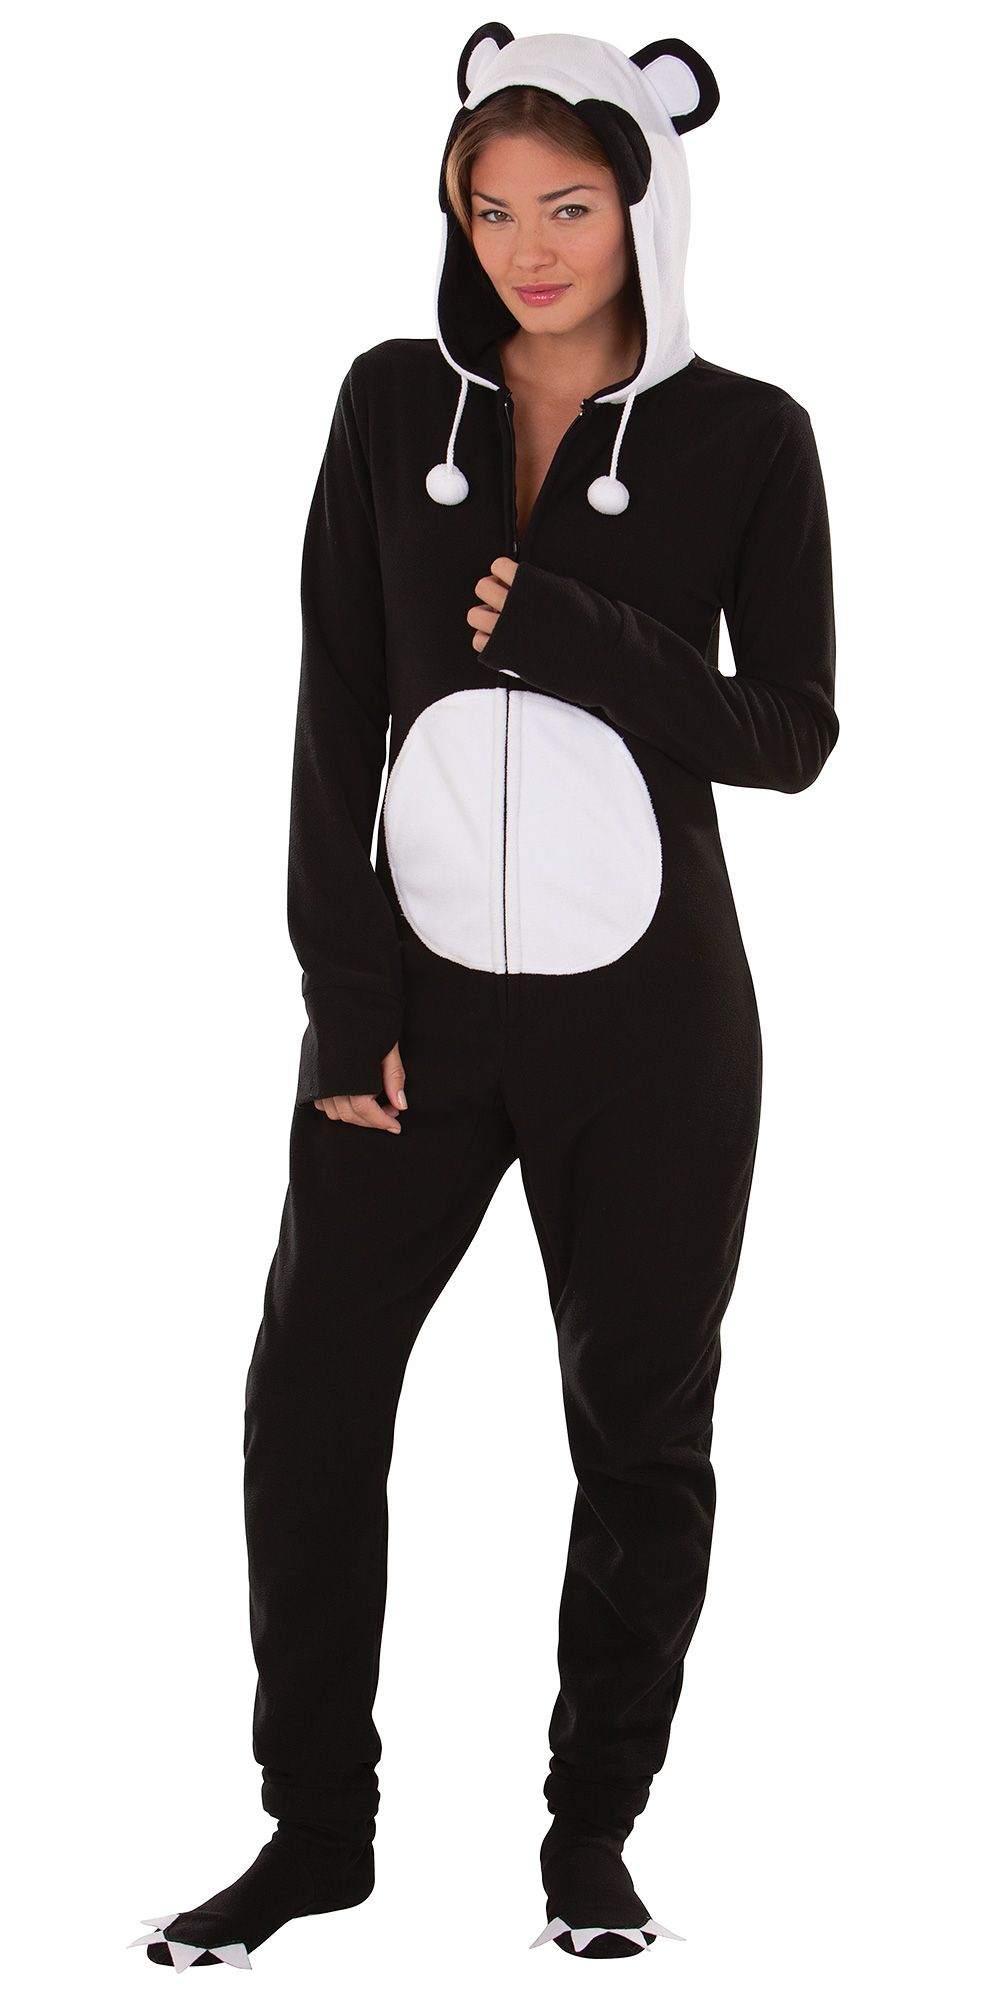 Women's Wild-Style Panda Hoodie-Footie from PajamaGram. $79.99 ...